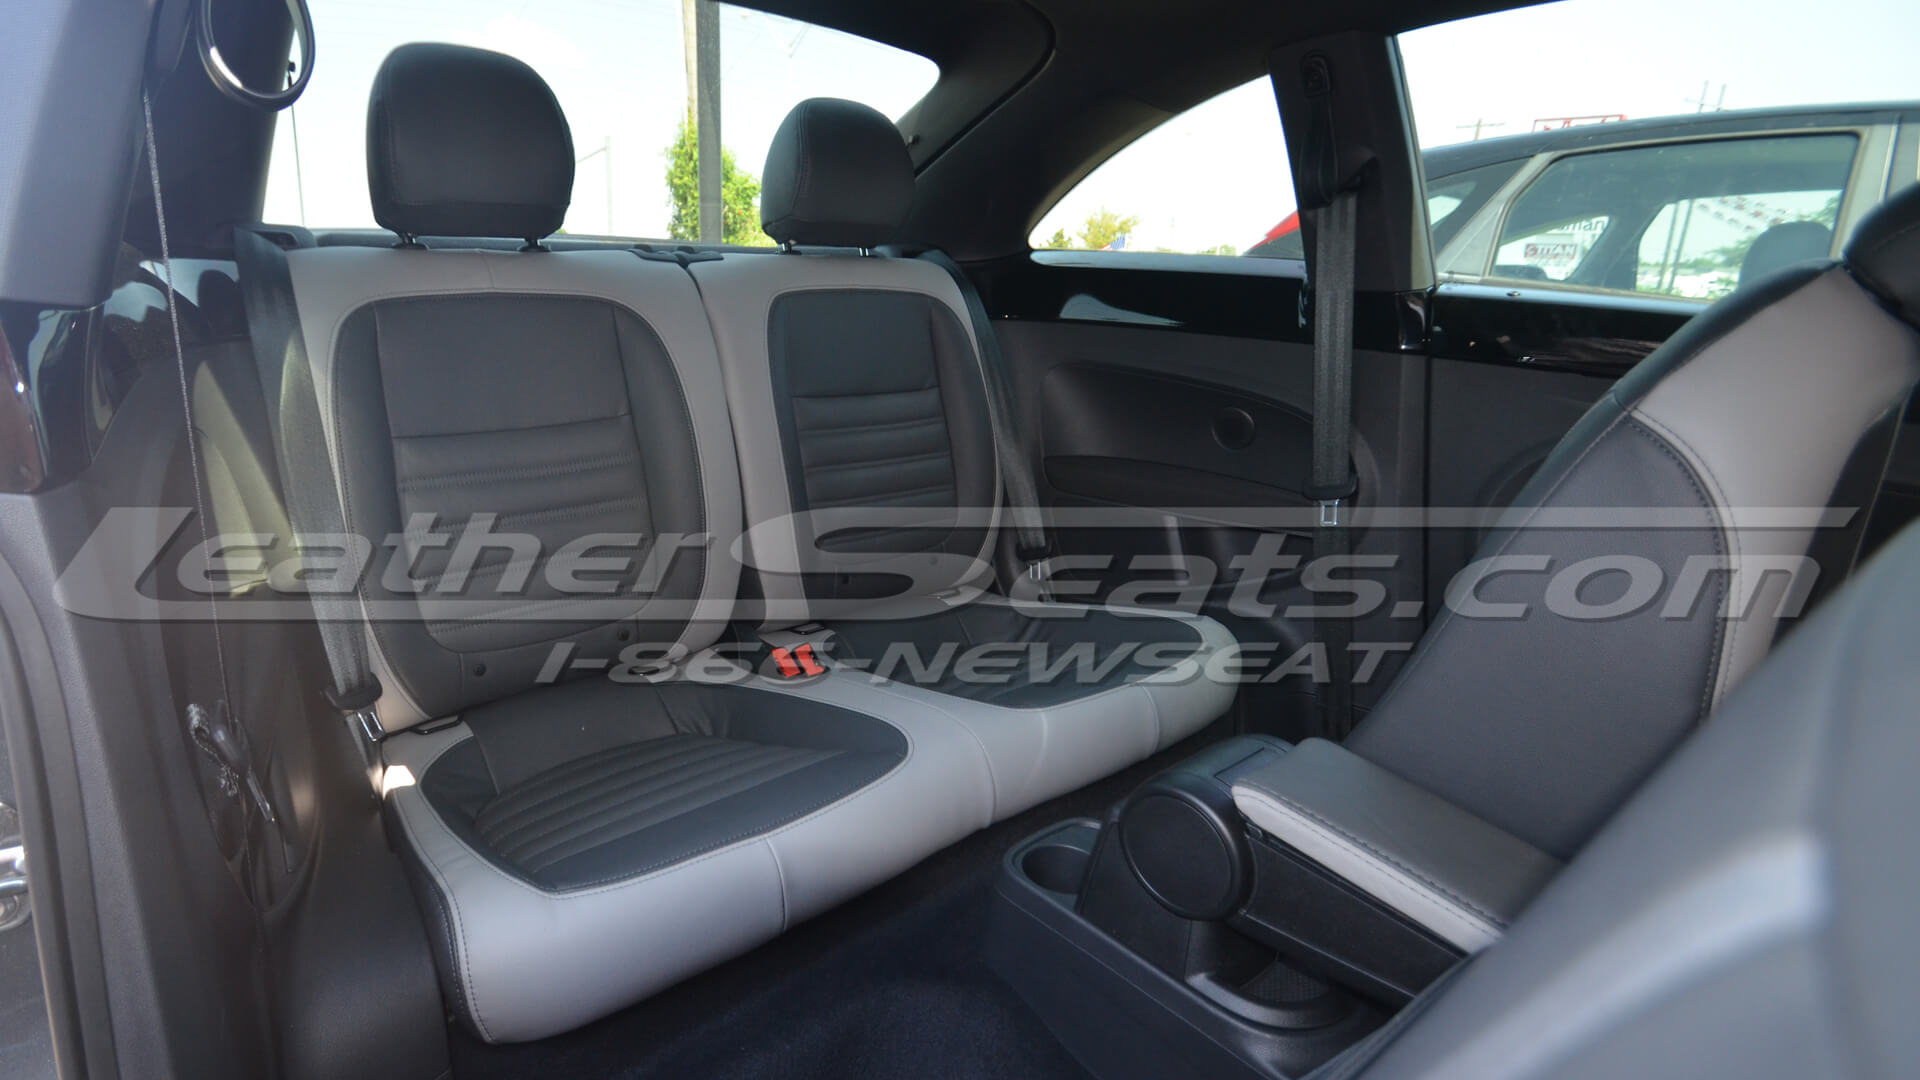 2012 Volkswagen Beetle custom leather interior - Graphite and Ash - Rear seats